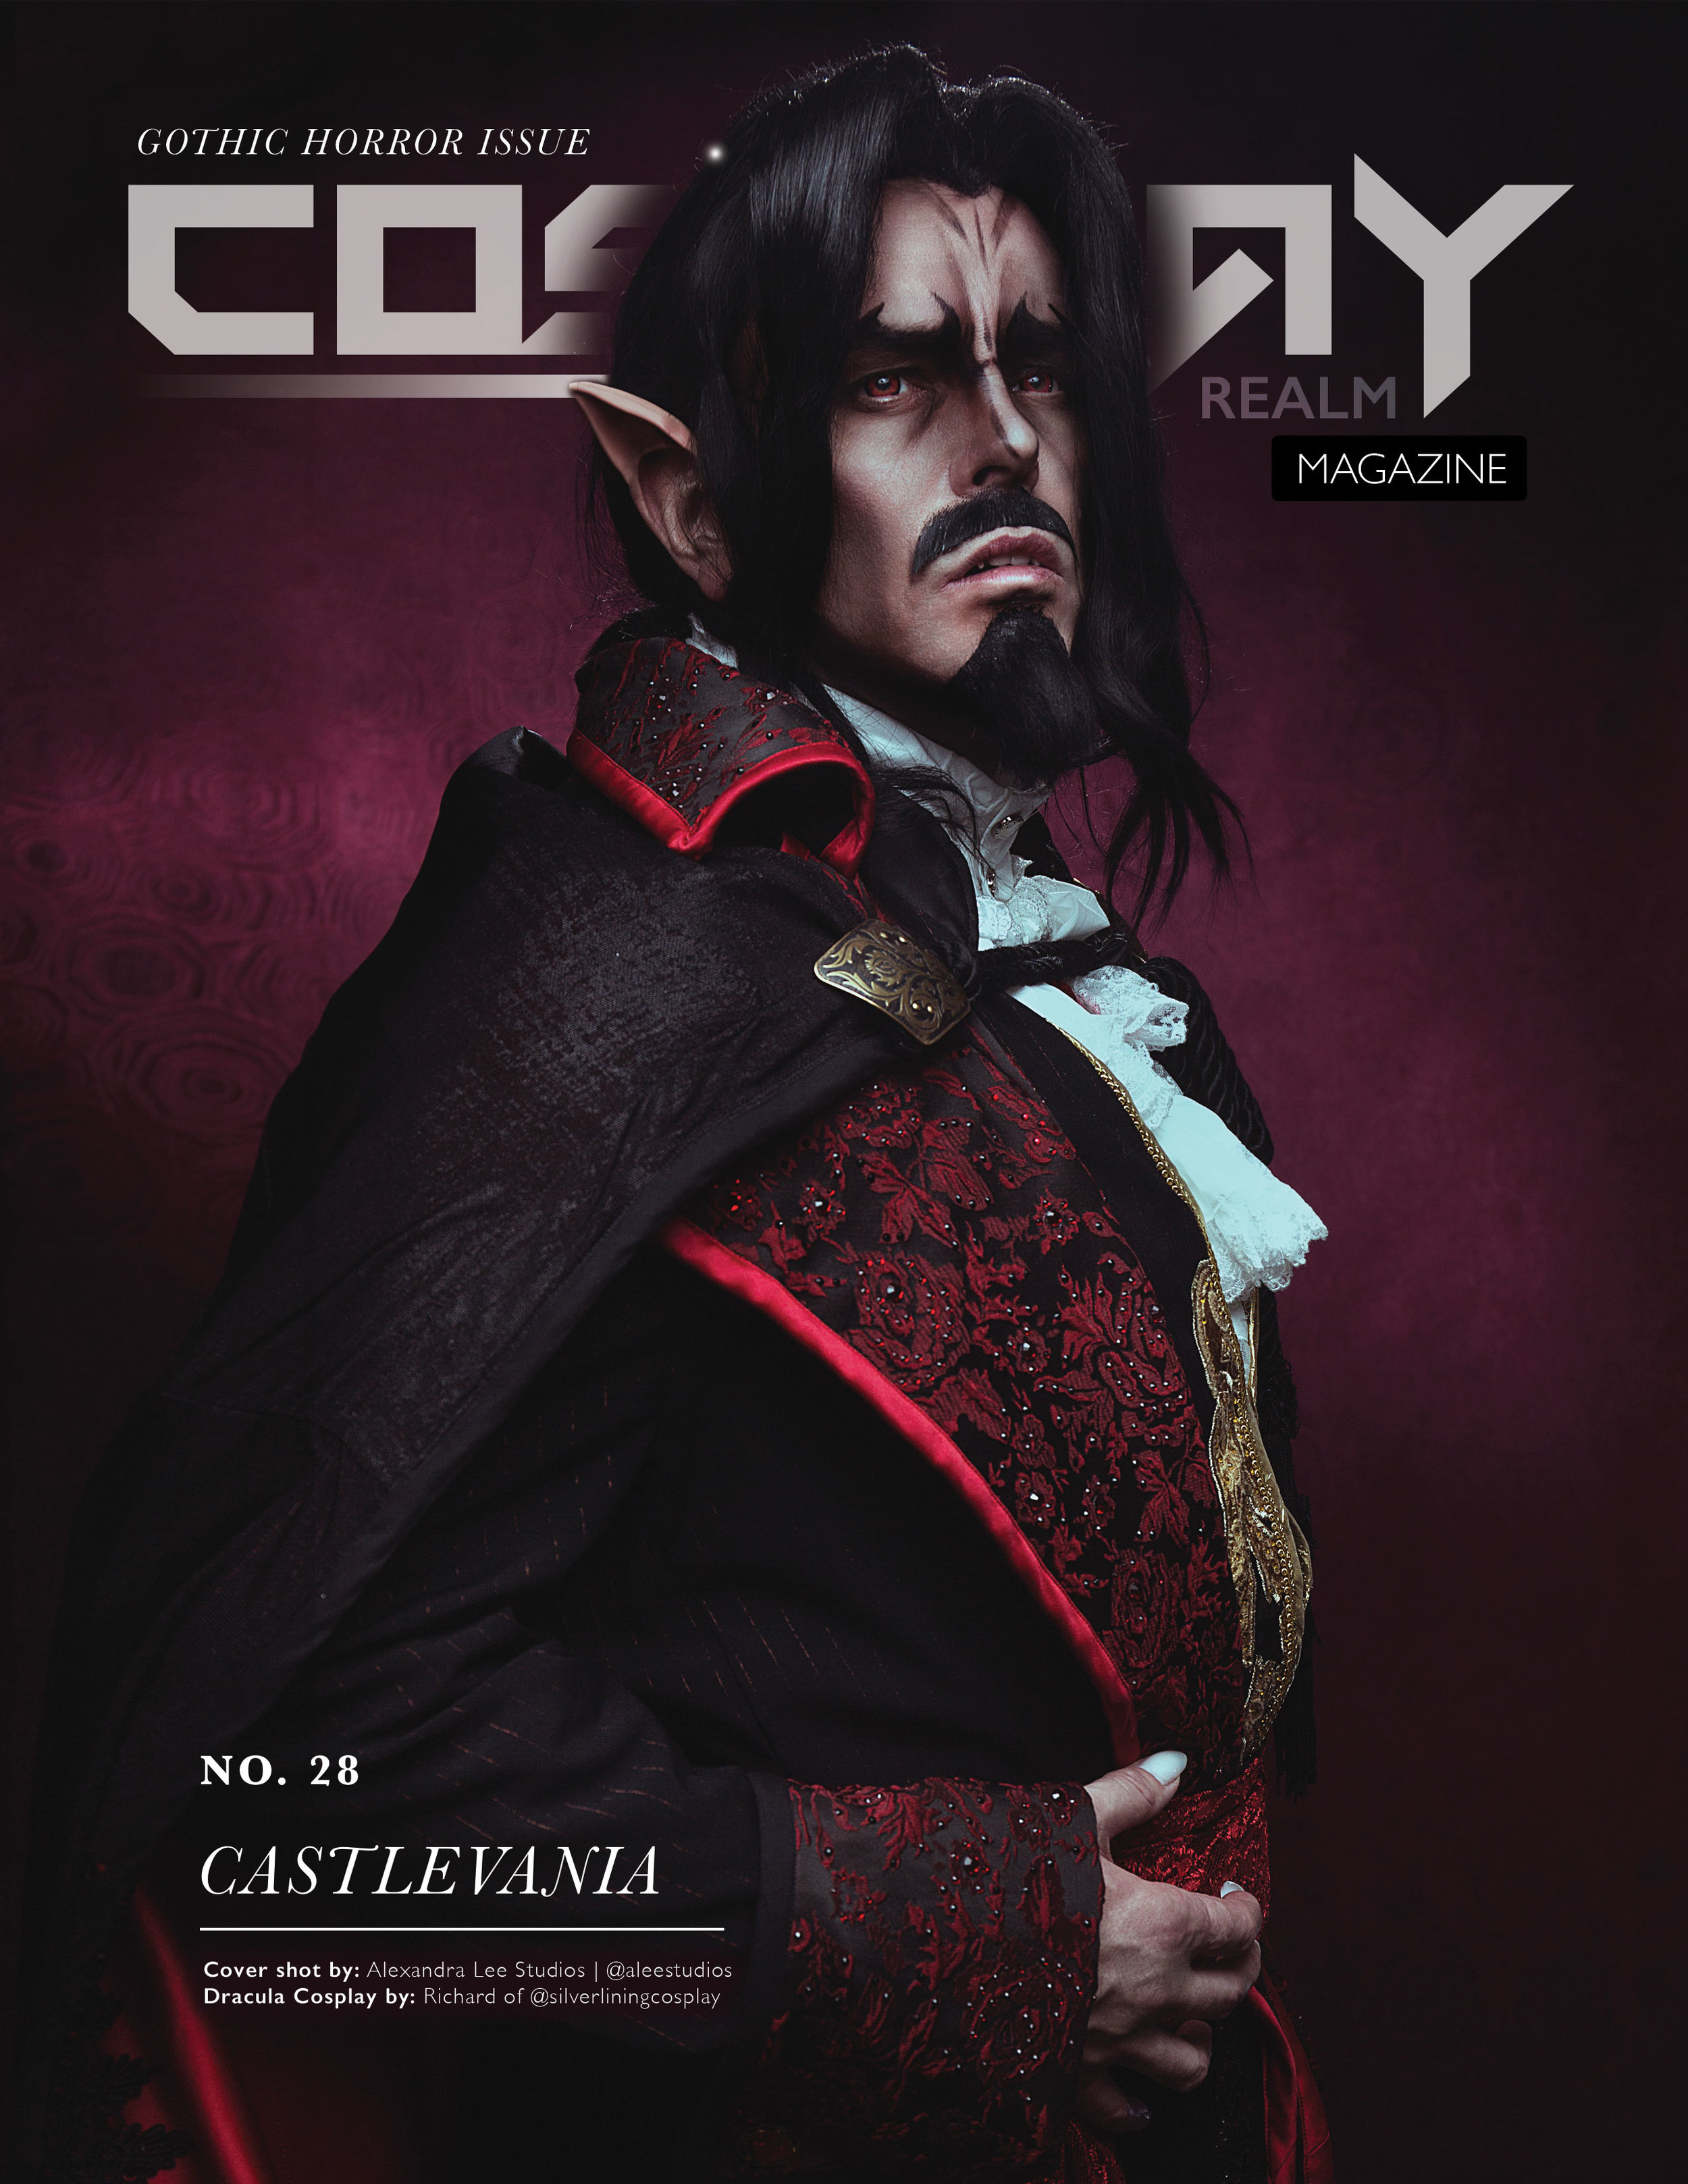 CRM No. 28 - The Gothic Horror Issue